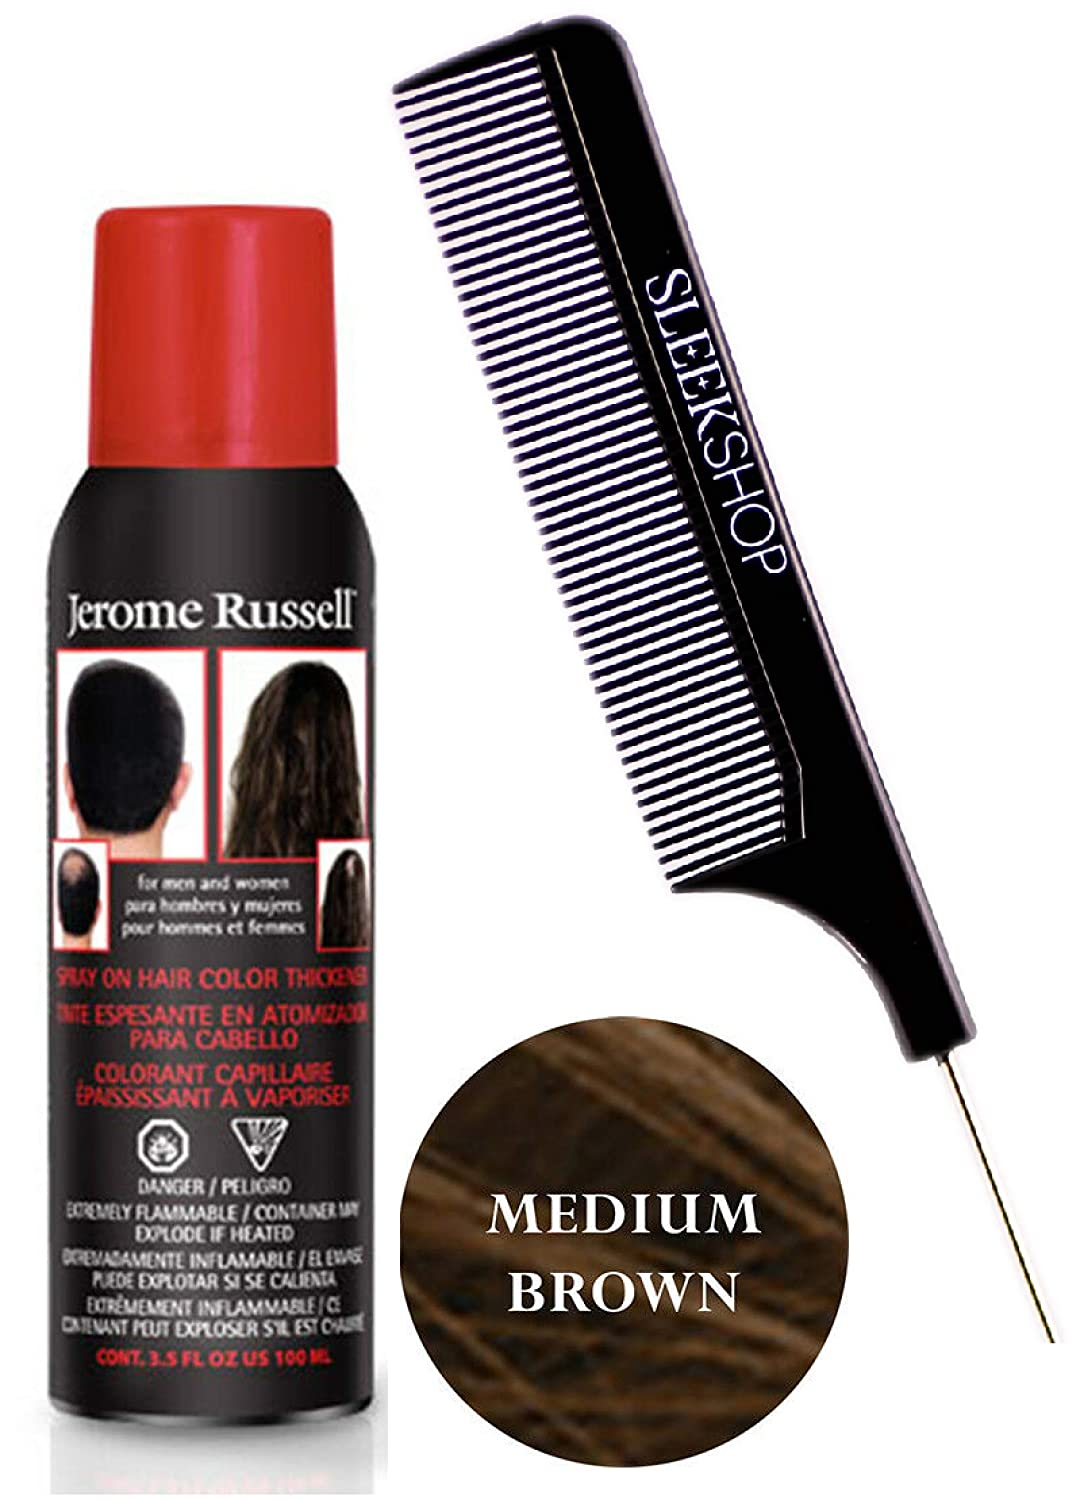 Jerome RusselL SPRAY ON HAIR COLOR THICKENER for MEN & WOMEN (w/Sleek Steel  Pin Tail Comb) 3.5 oz / 100 g Haircolor Dye for Thinning hair or Hair Loss  ...